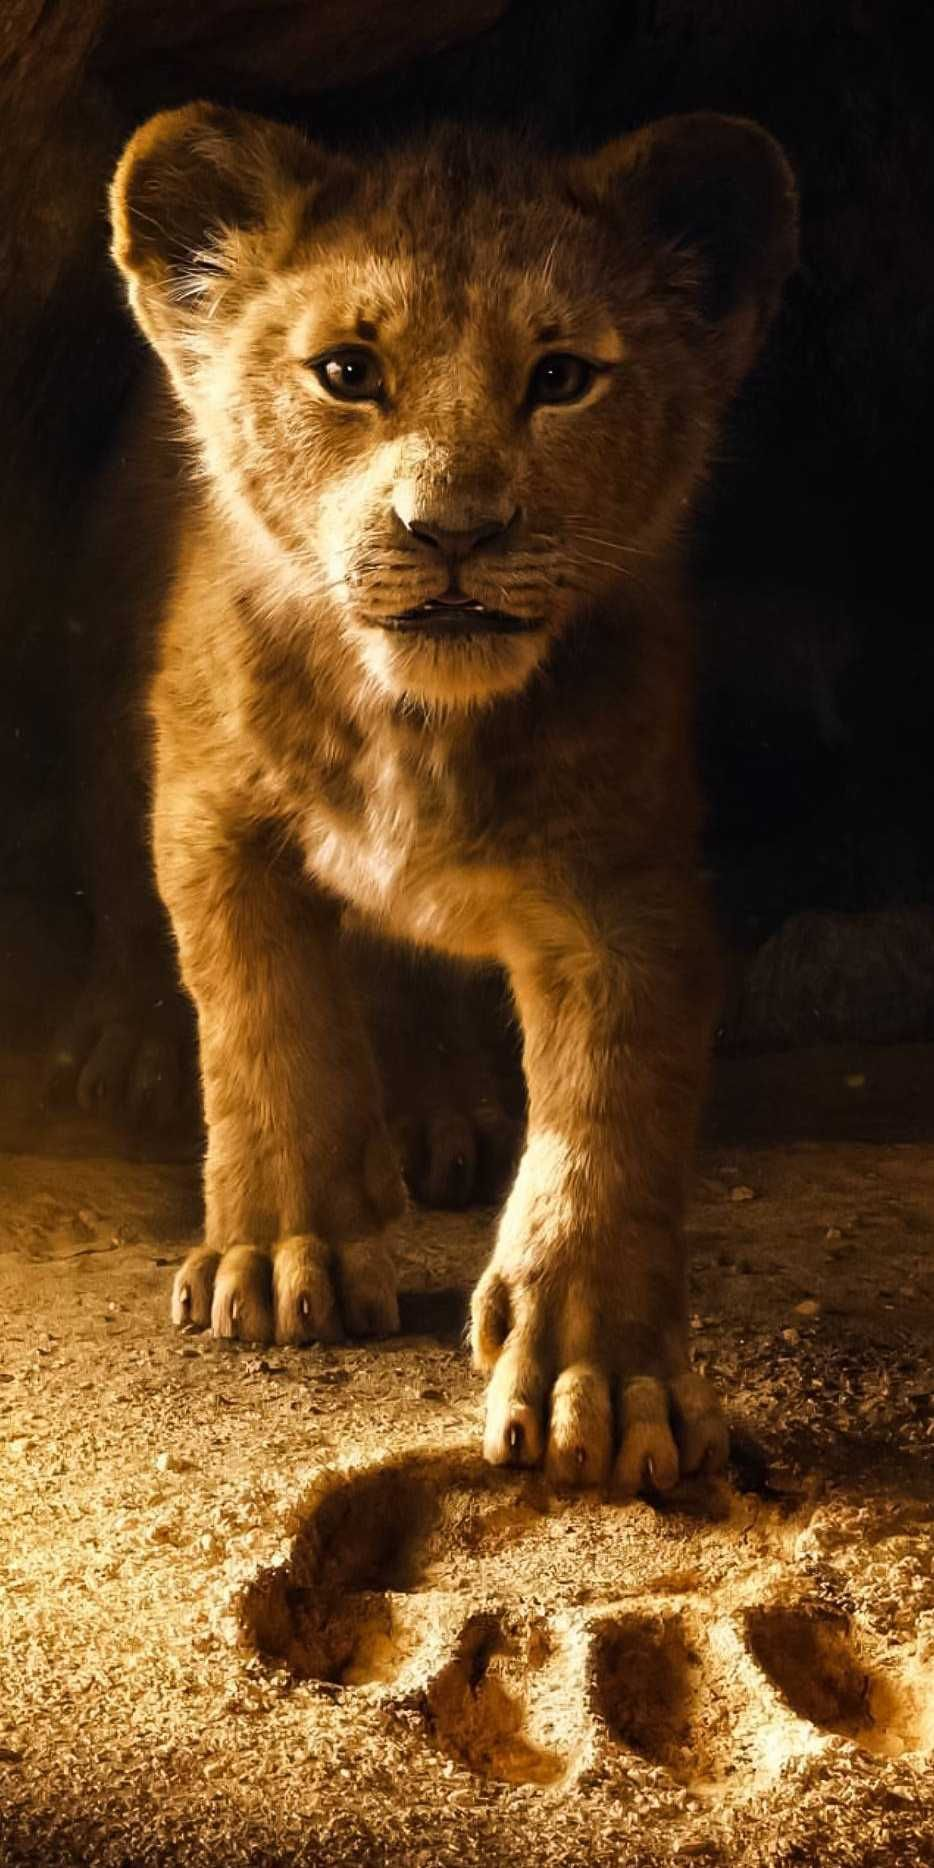 The Lion King Iphone Wallpaper Lion King Pictures Lion King Movie Lion King